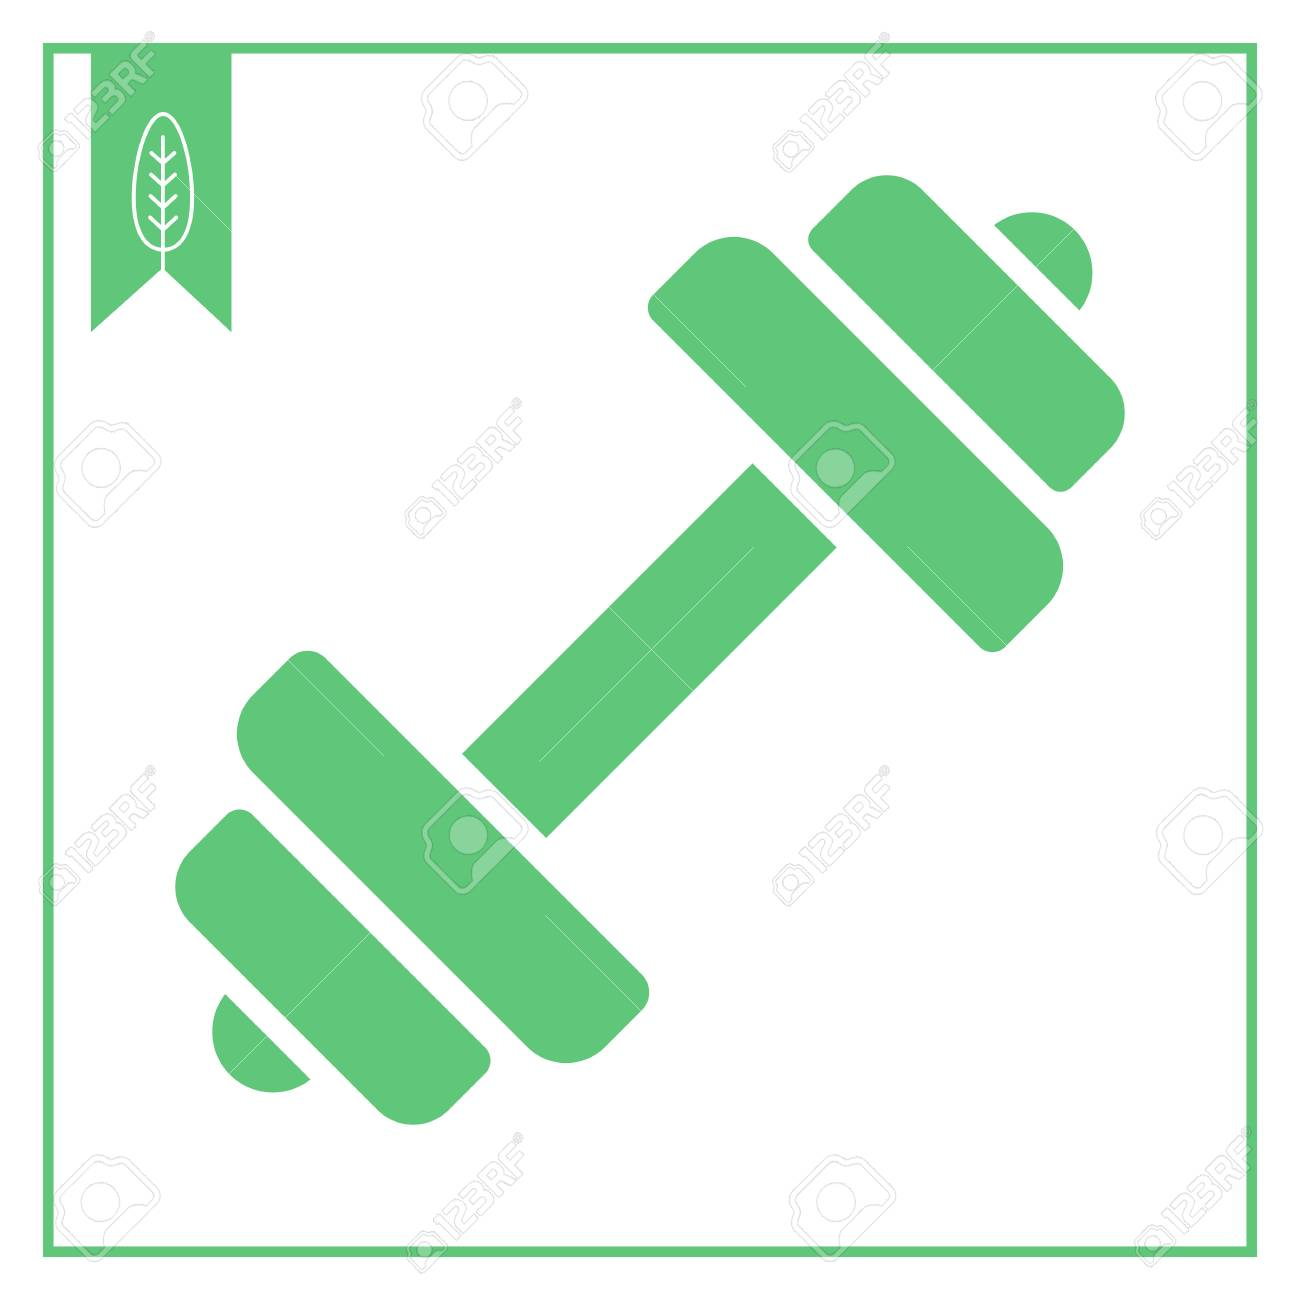 Vector Icon Of Barbell With Weight Plate-Vector icon of barbell with weight plates Stock Vector - 46863296-10